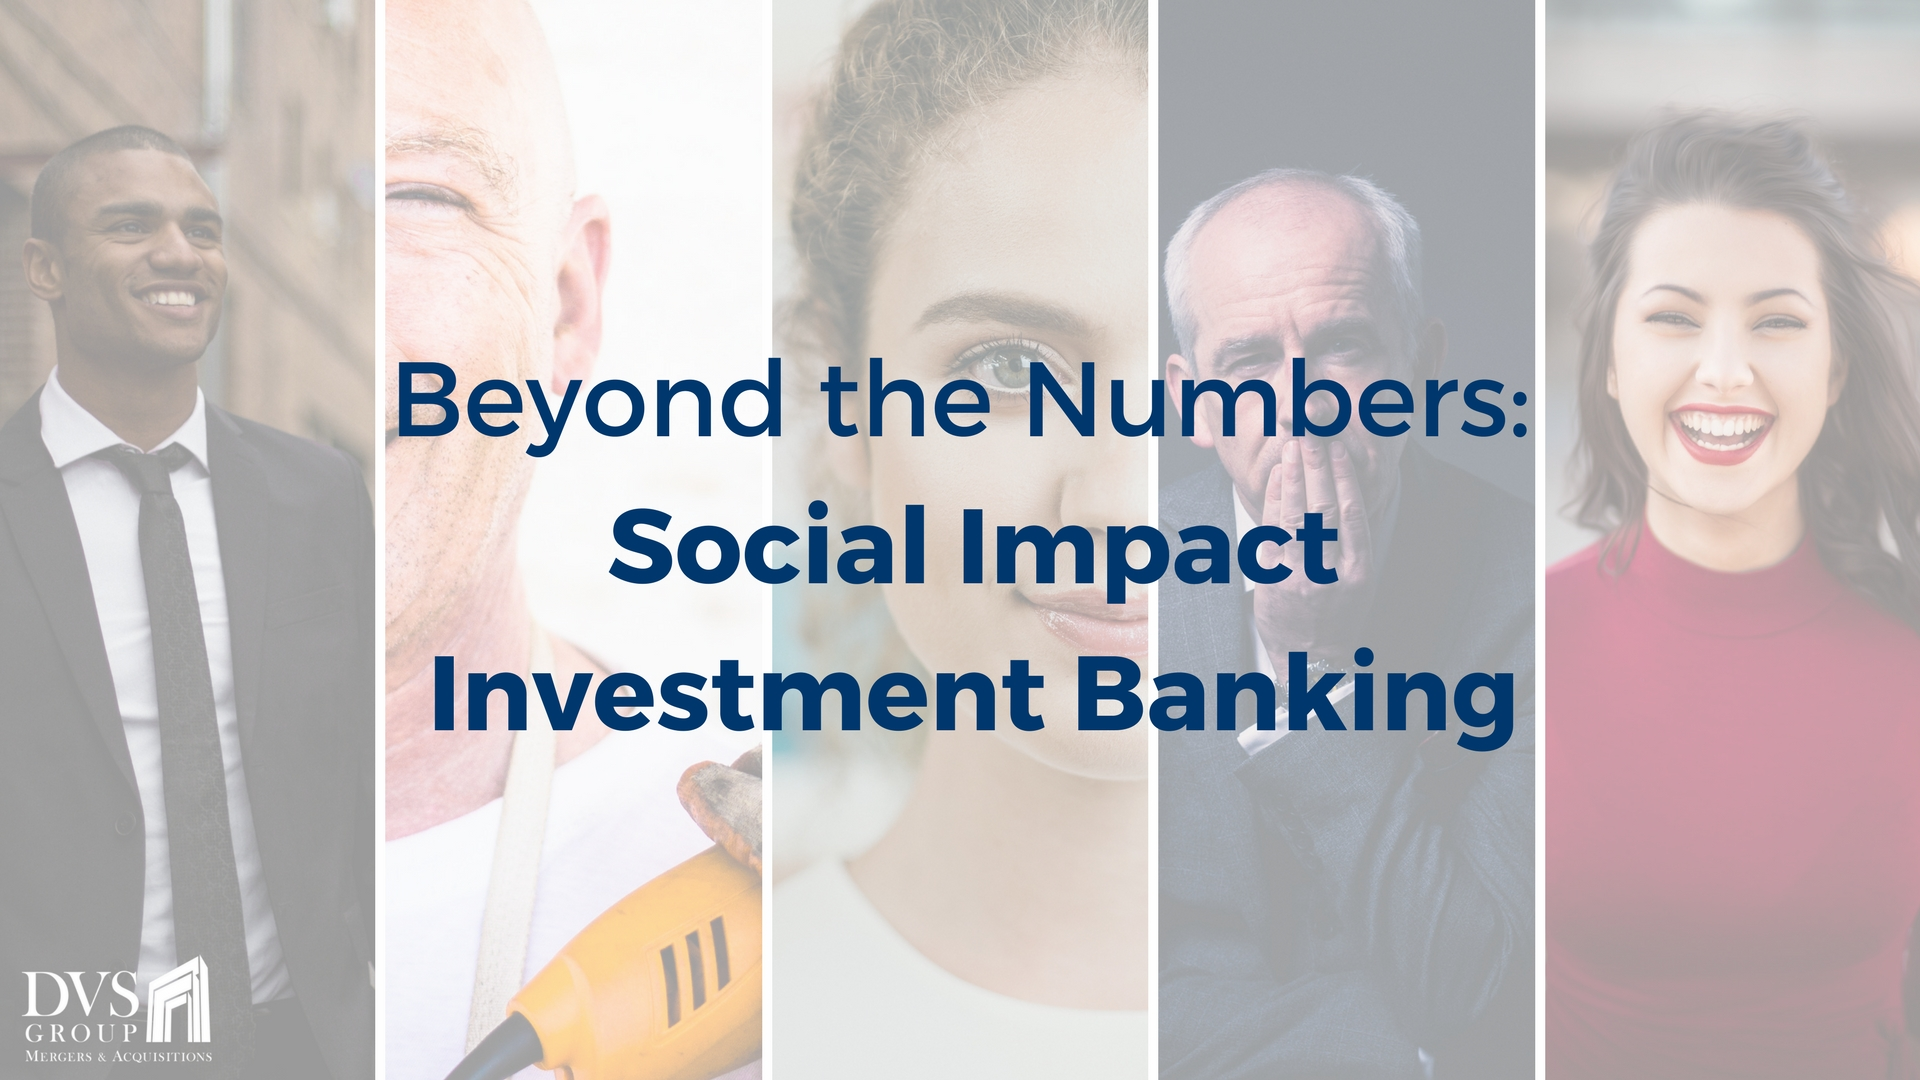 Social Impact Investment Banking